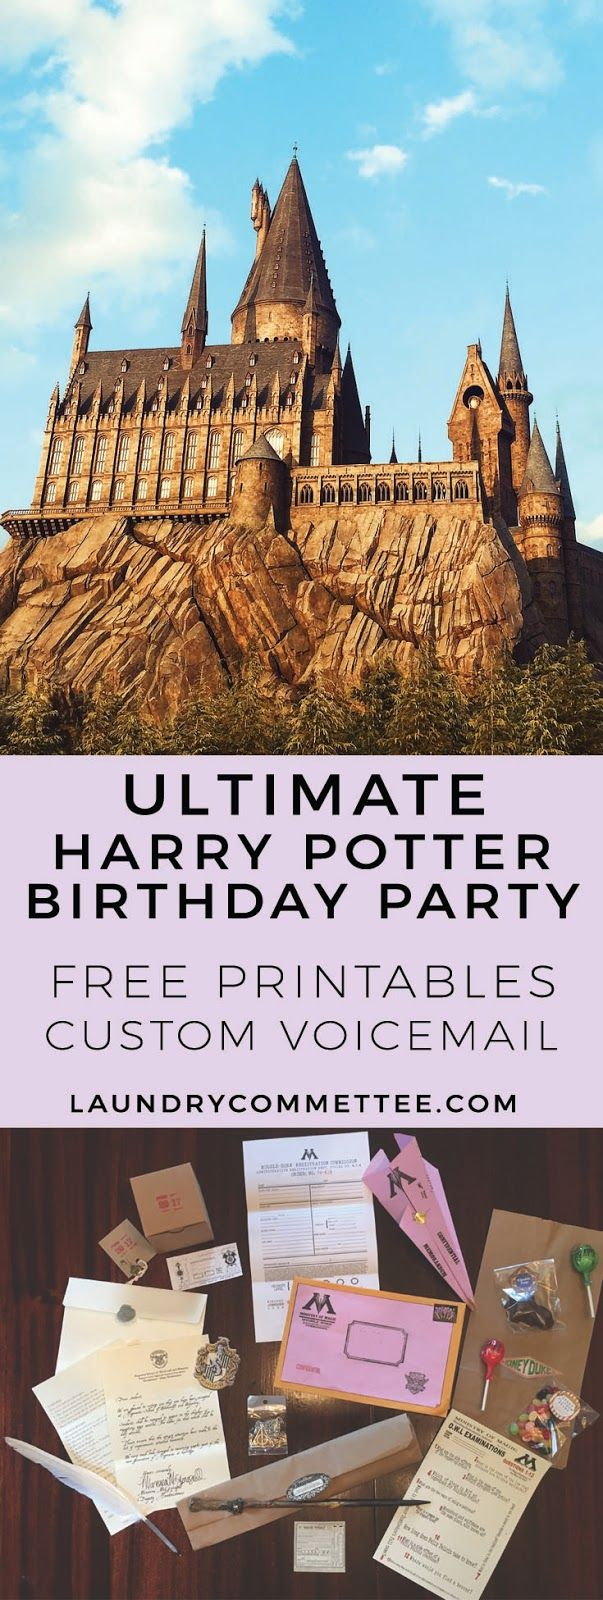 Ultimate Harry Potter Birthday Party + free custom potter voicemail